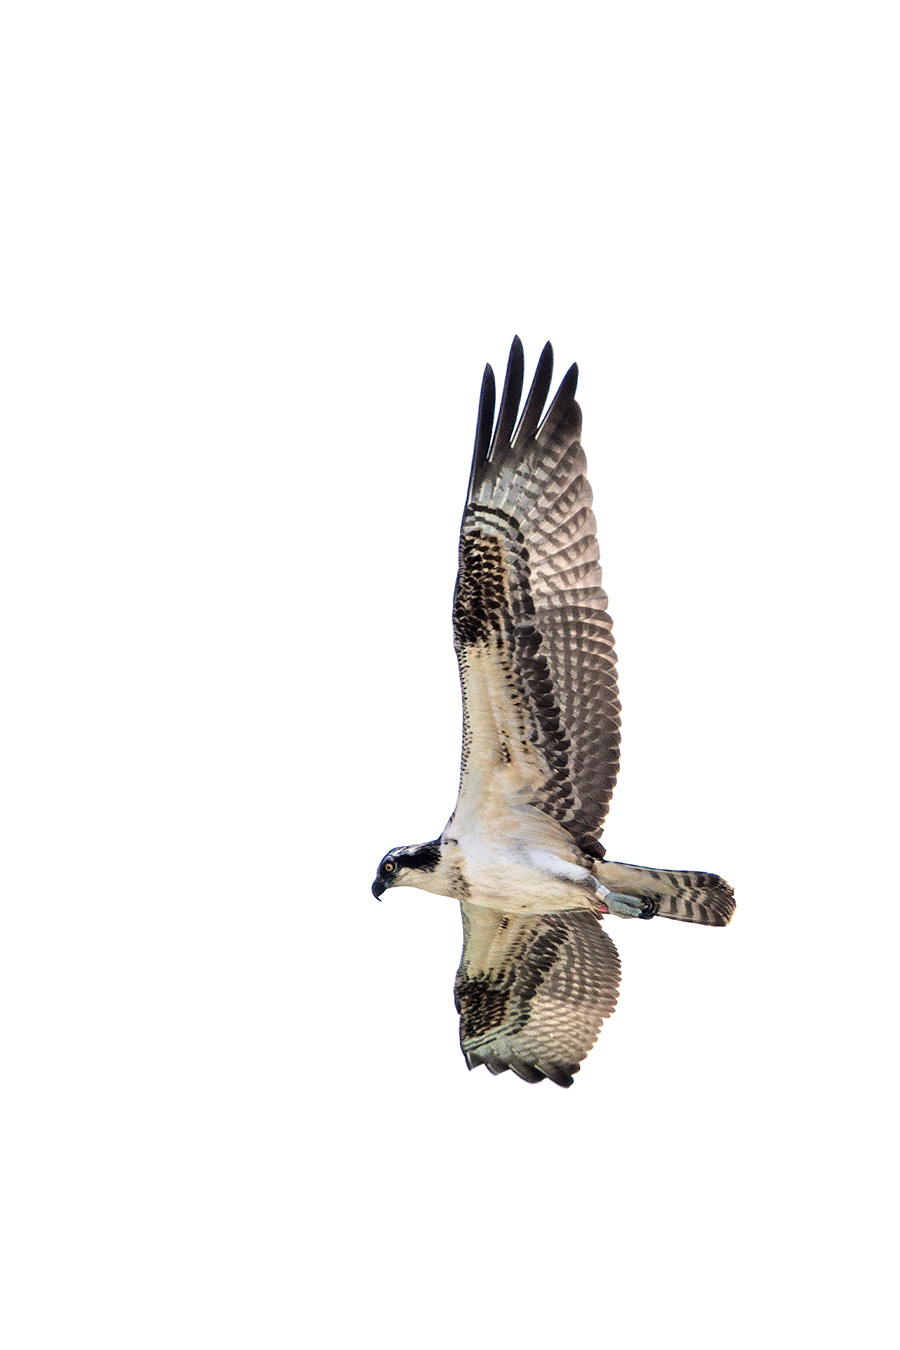 My First Red Banded Osprey, shot from the comfort of my own beach chair.